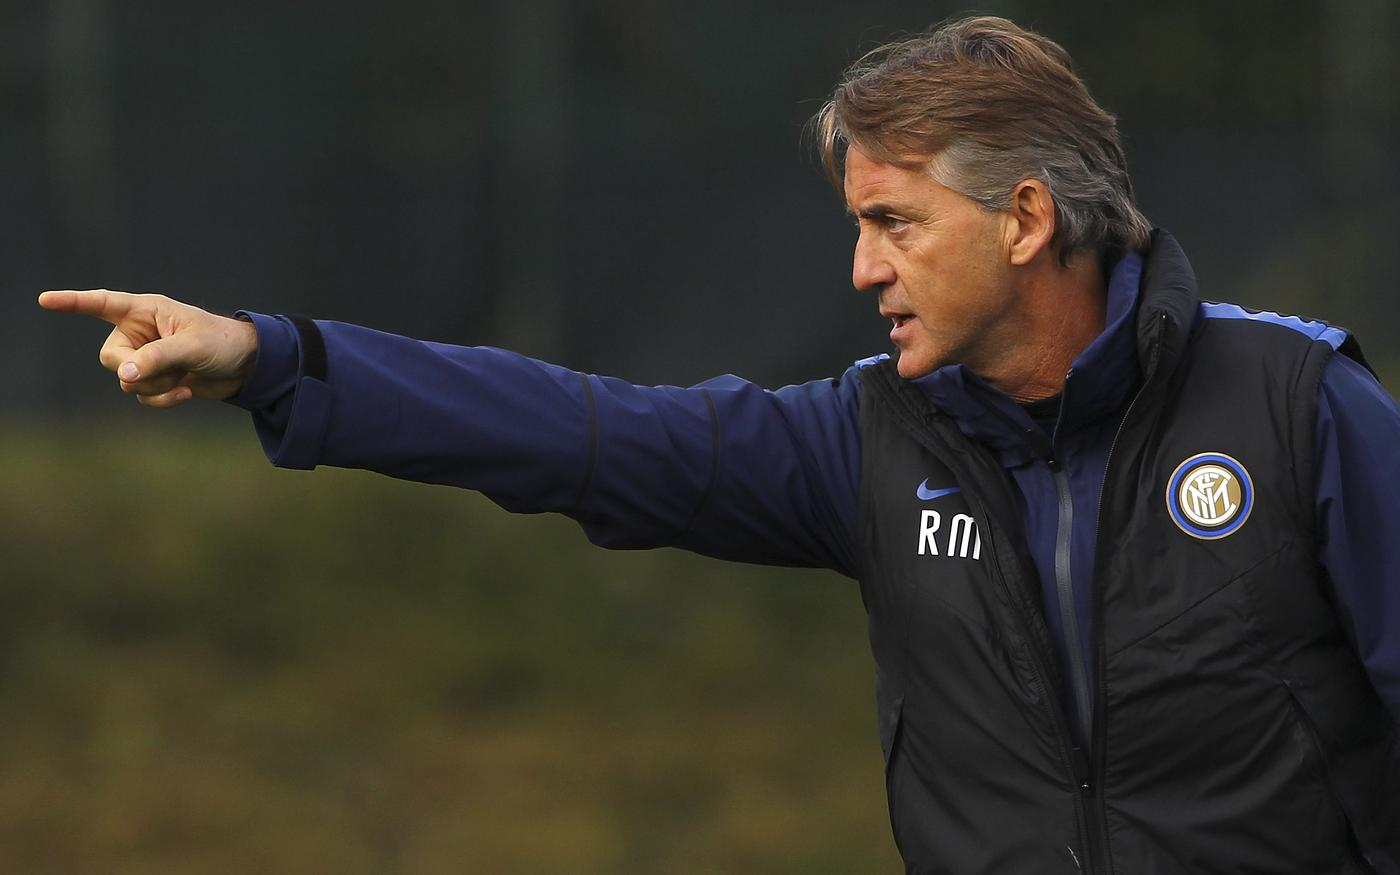 Roberto Mancini: I would have loved to manage Arsenal